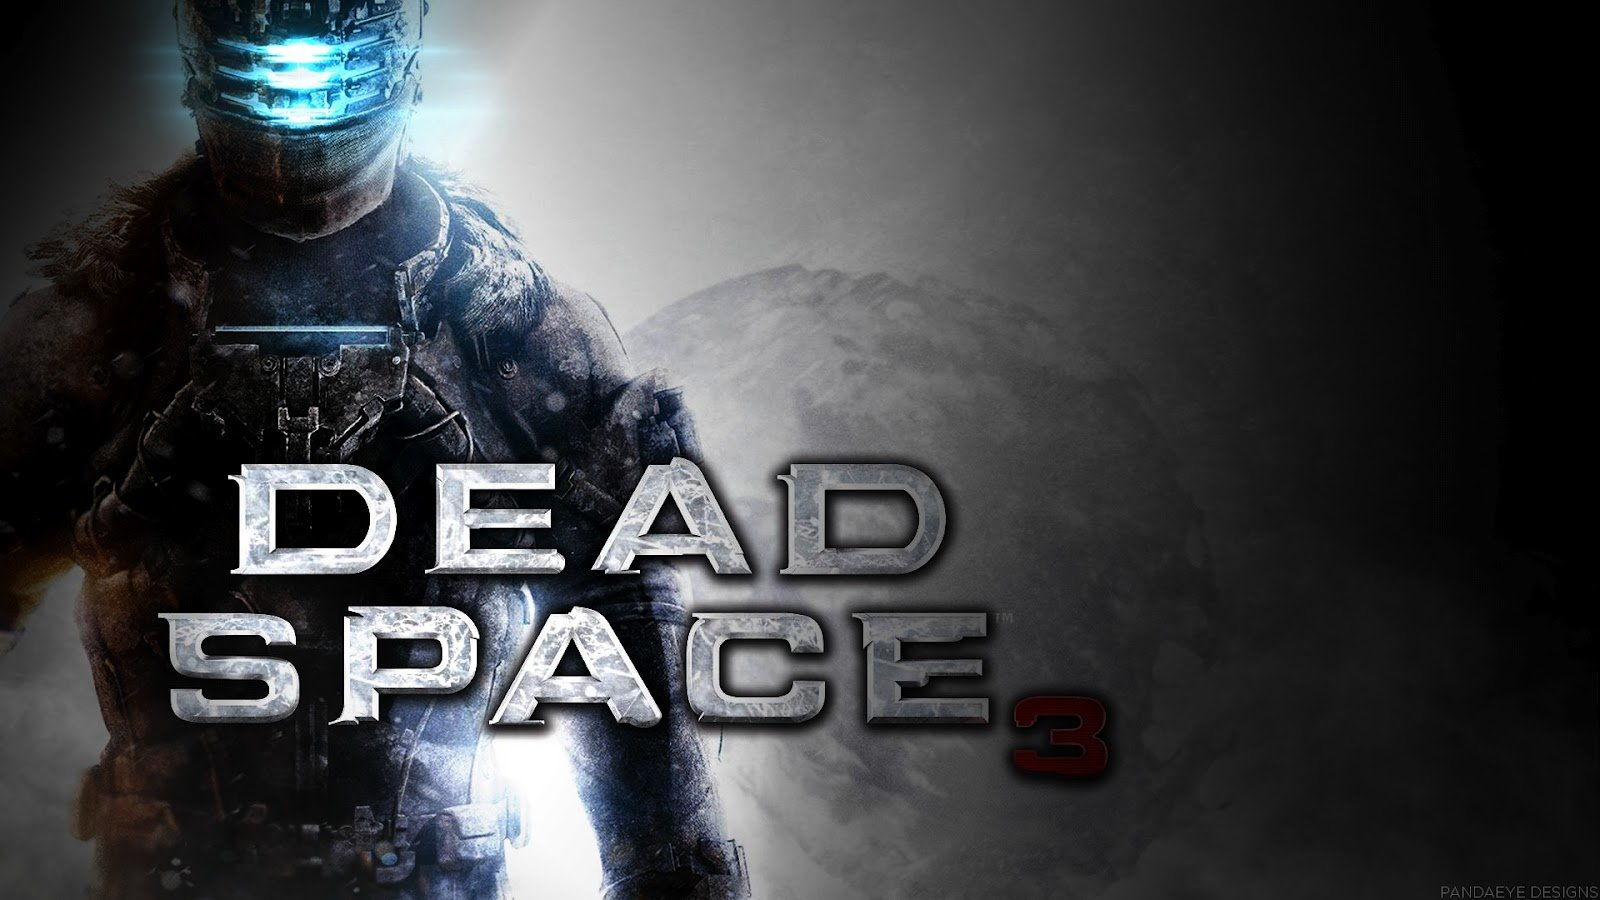 dead space 3 hd wallpaper 1080p super high definition quality 1920 x ...